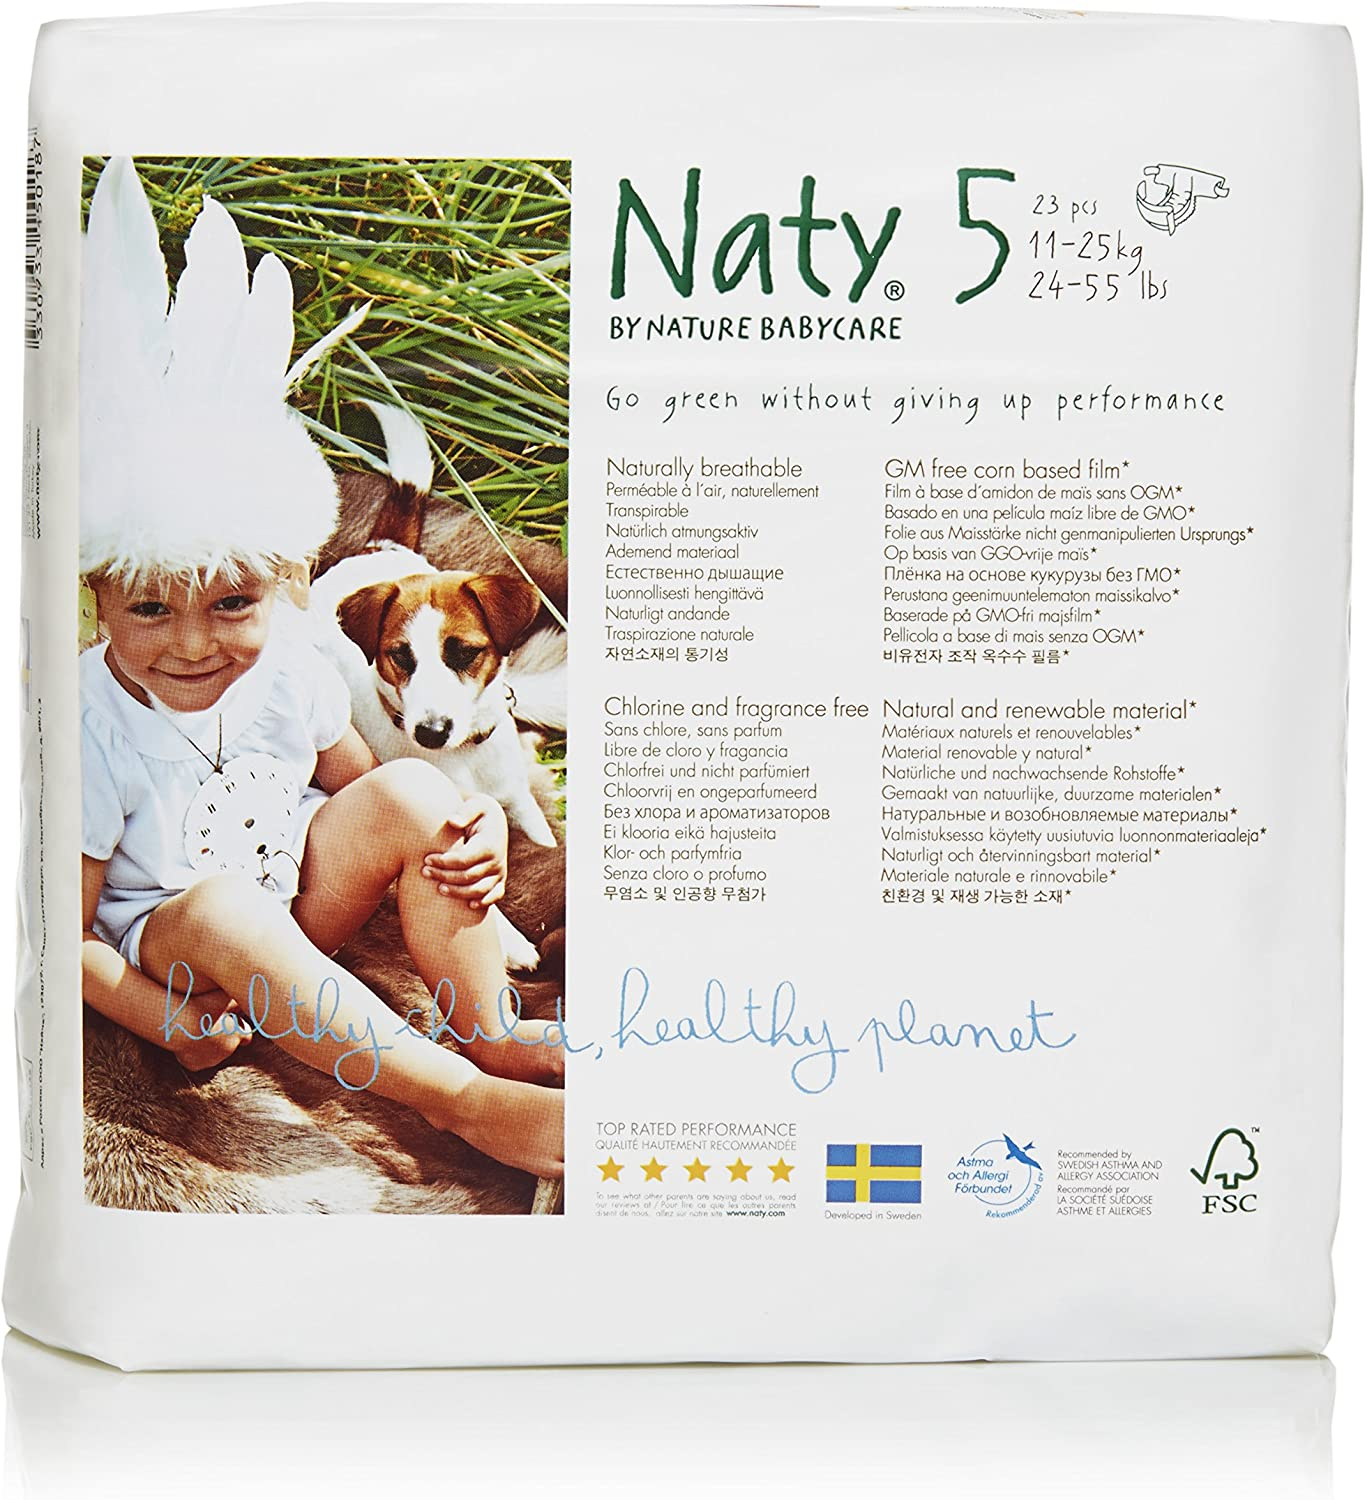 Naty by Nature Babycare Eco-Friendly Premium Disposable Diapers for Sensitive Skin, Size 5, 4 packs of 23 (92 Count) (Chemical, chlorine, perfume free)